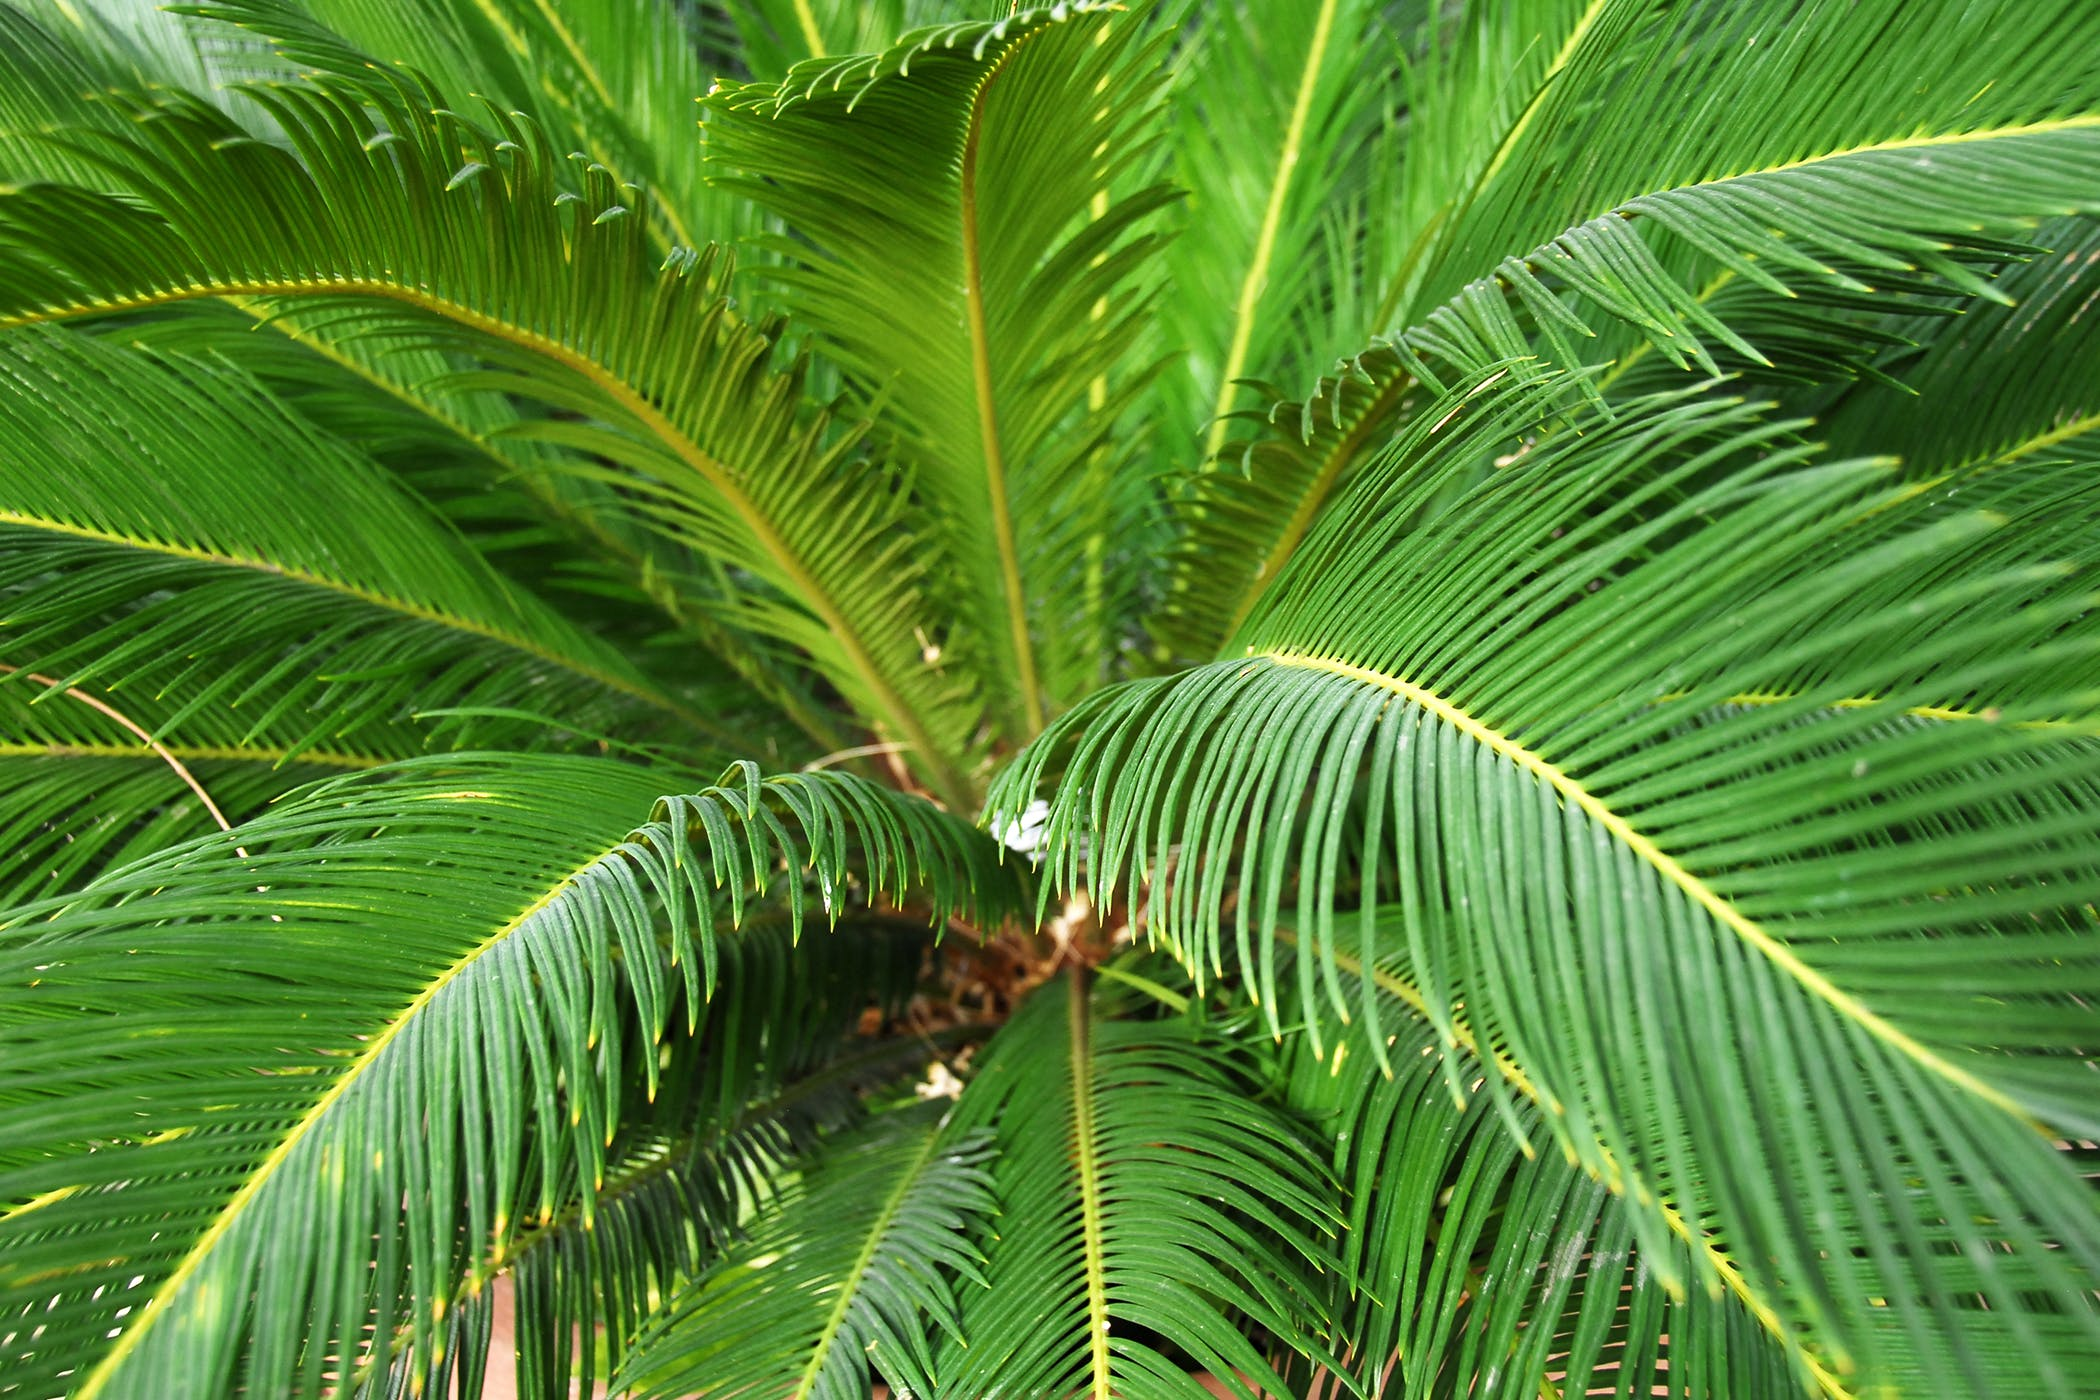 Cycad Poisoning in Cats